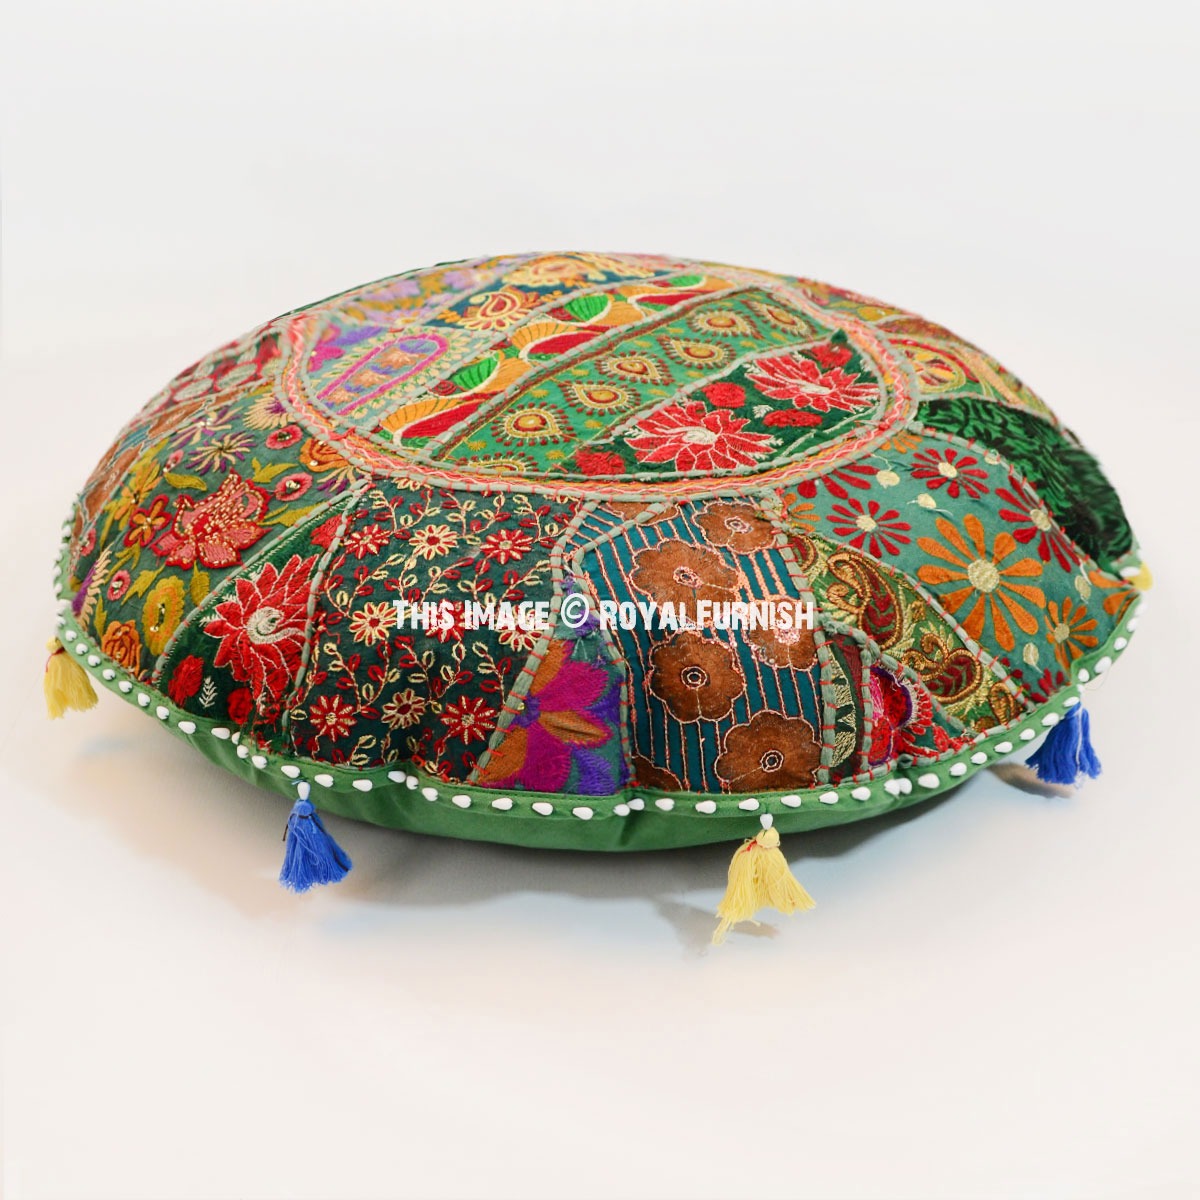 Oversized 71 Cm. Vintage Patchwork Round Floor Seating Pillow Cover - RoyalFurnish.com